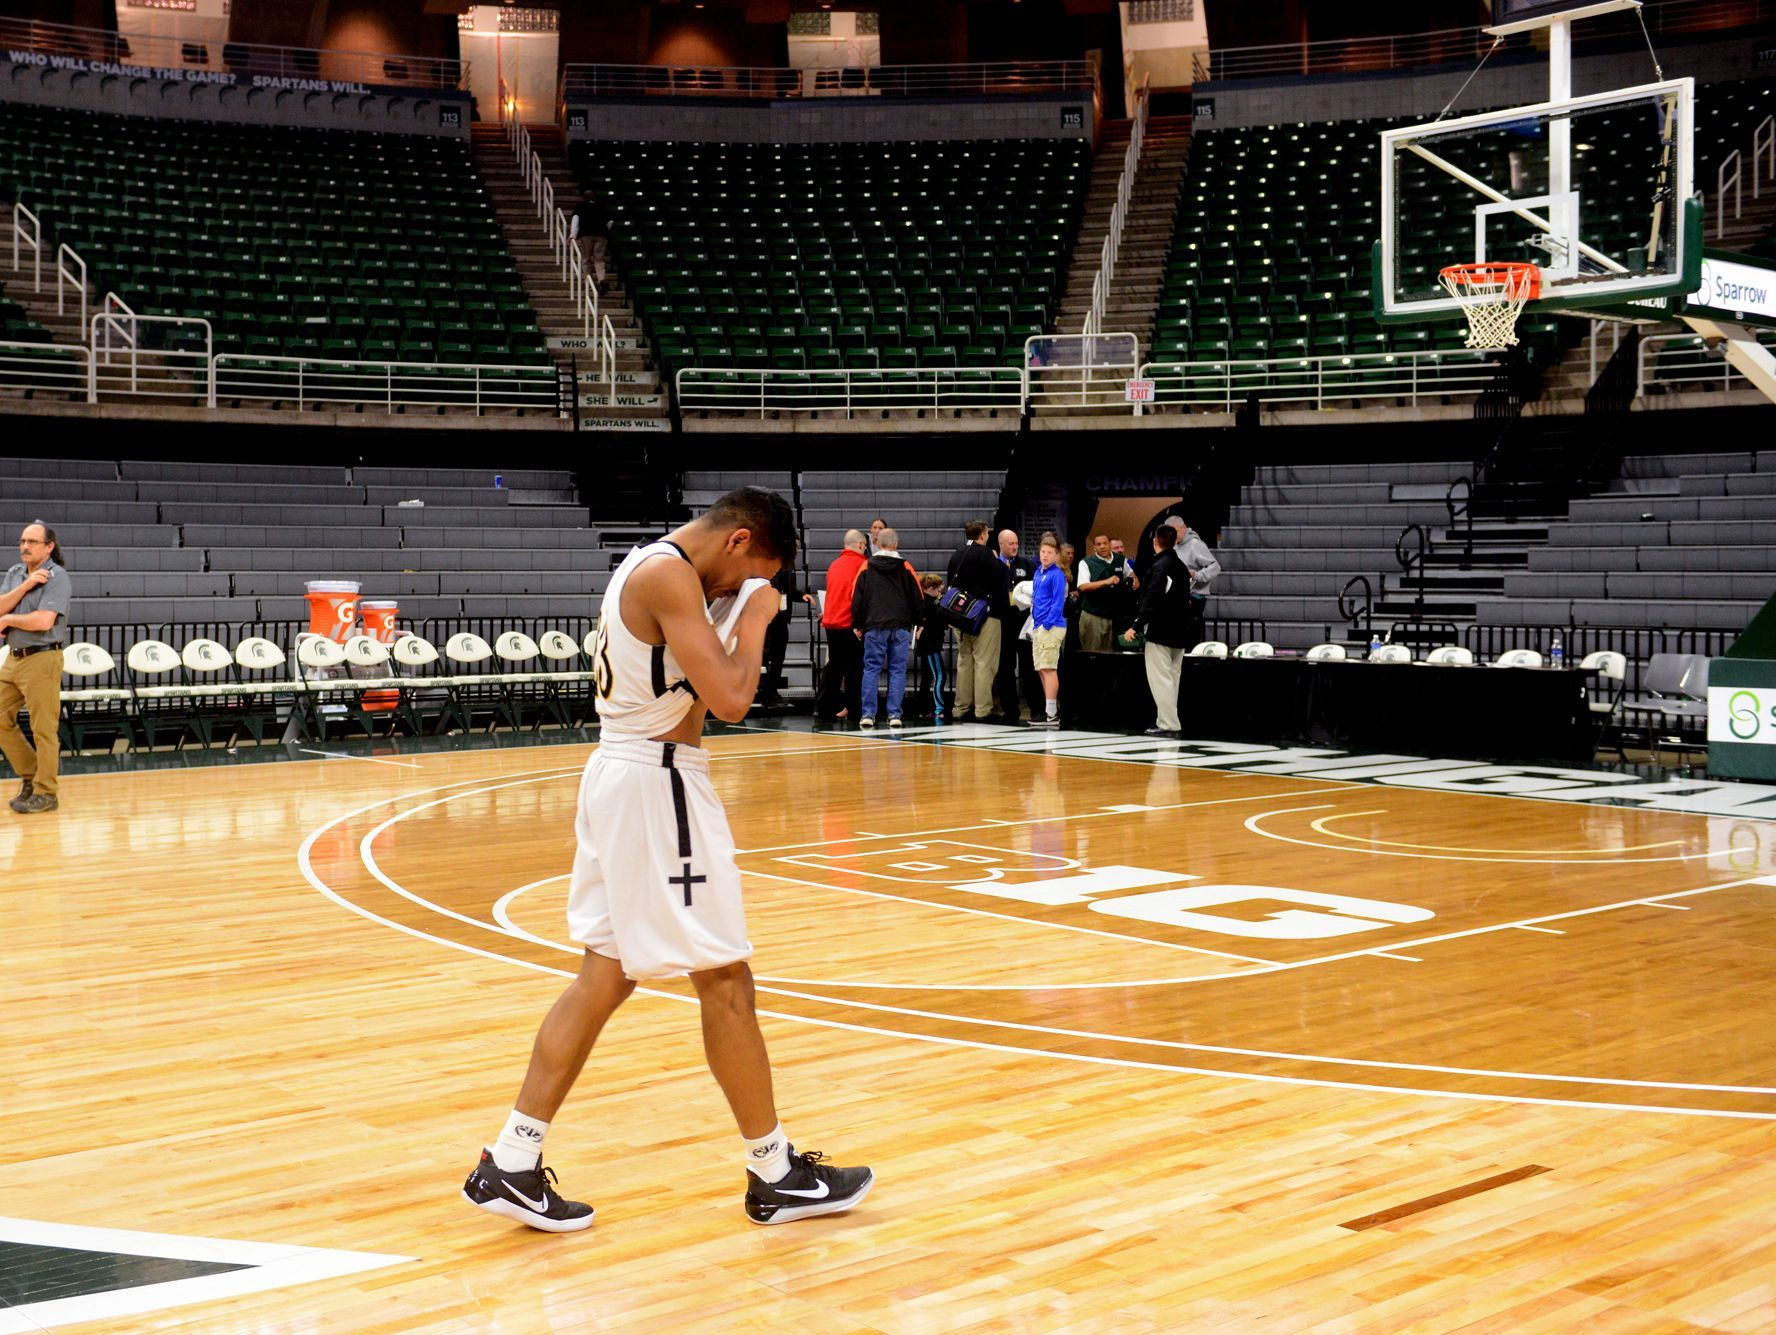 Lansing Christian's Forrest Bouyer walks off the court after the team's loss in the Class D state semifinals against Buckley on Thursday, March 23, 2017 at the Breslin Center in East Lansing. Buckley won, 68-61.